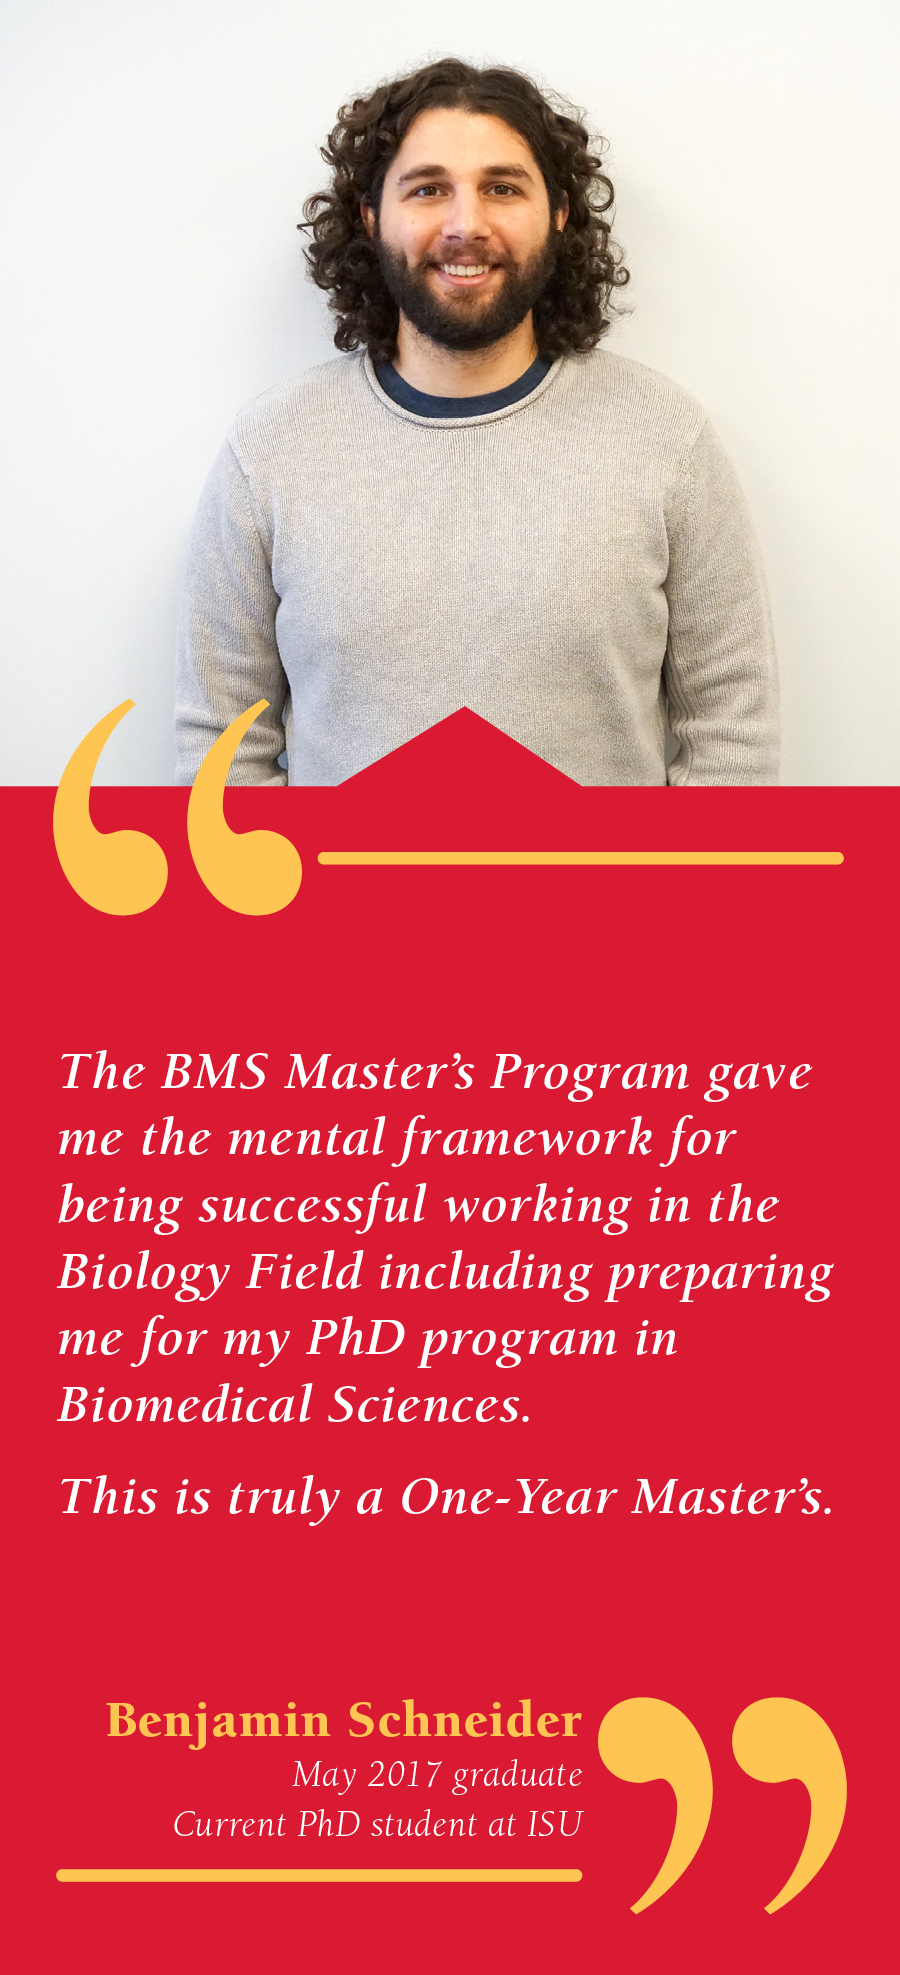 Ben Schneider, BMS One-Year Program Graduate, Current BMS PhD student: The BMS Master's Program gave me the mental framework for being successful working in the Biology Field including preparing me for my PhD Program in Biomedical Sciences. This is truly a One-Year Master's